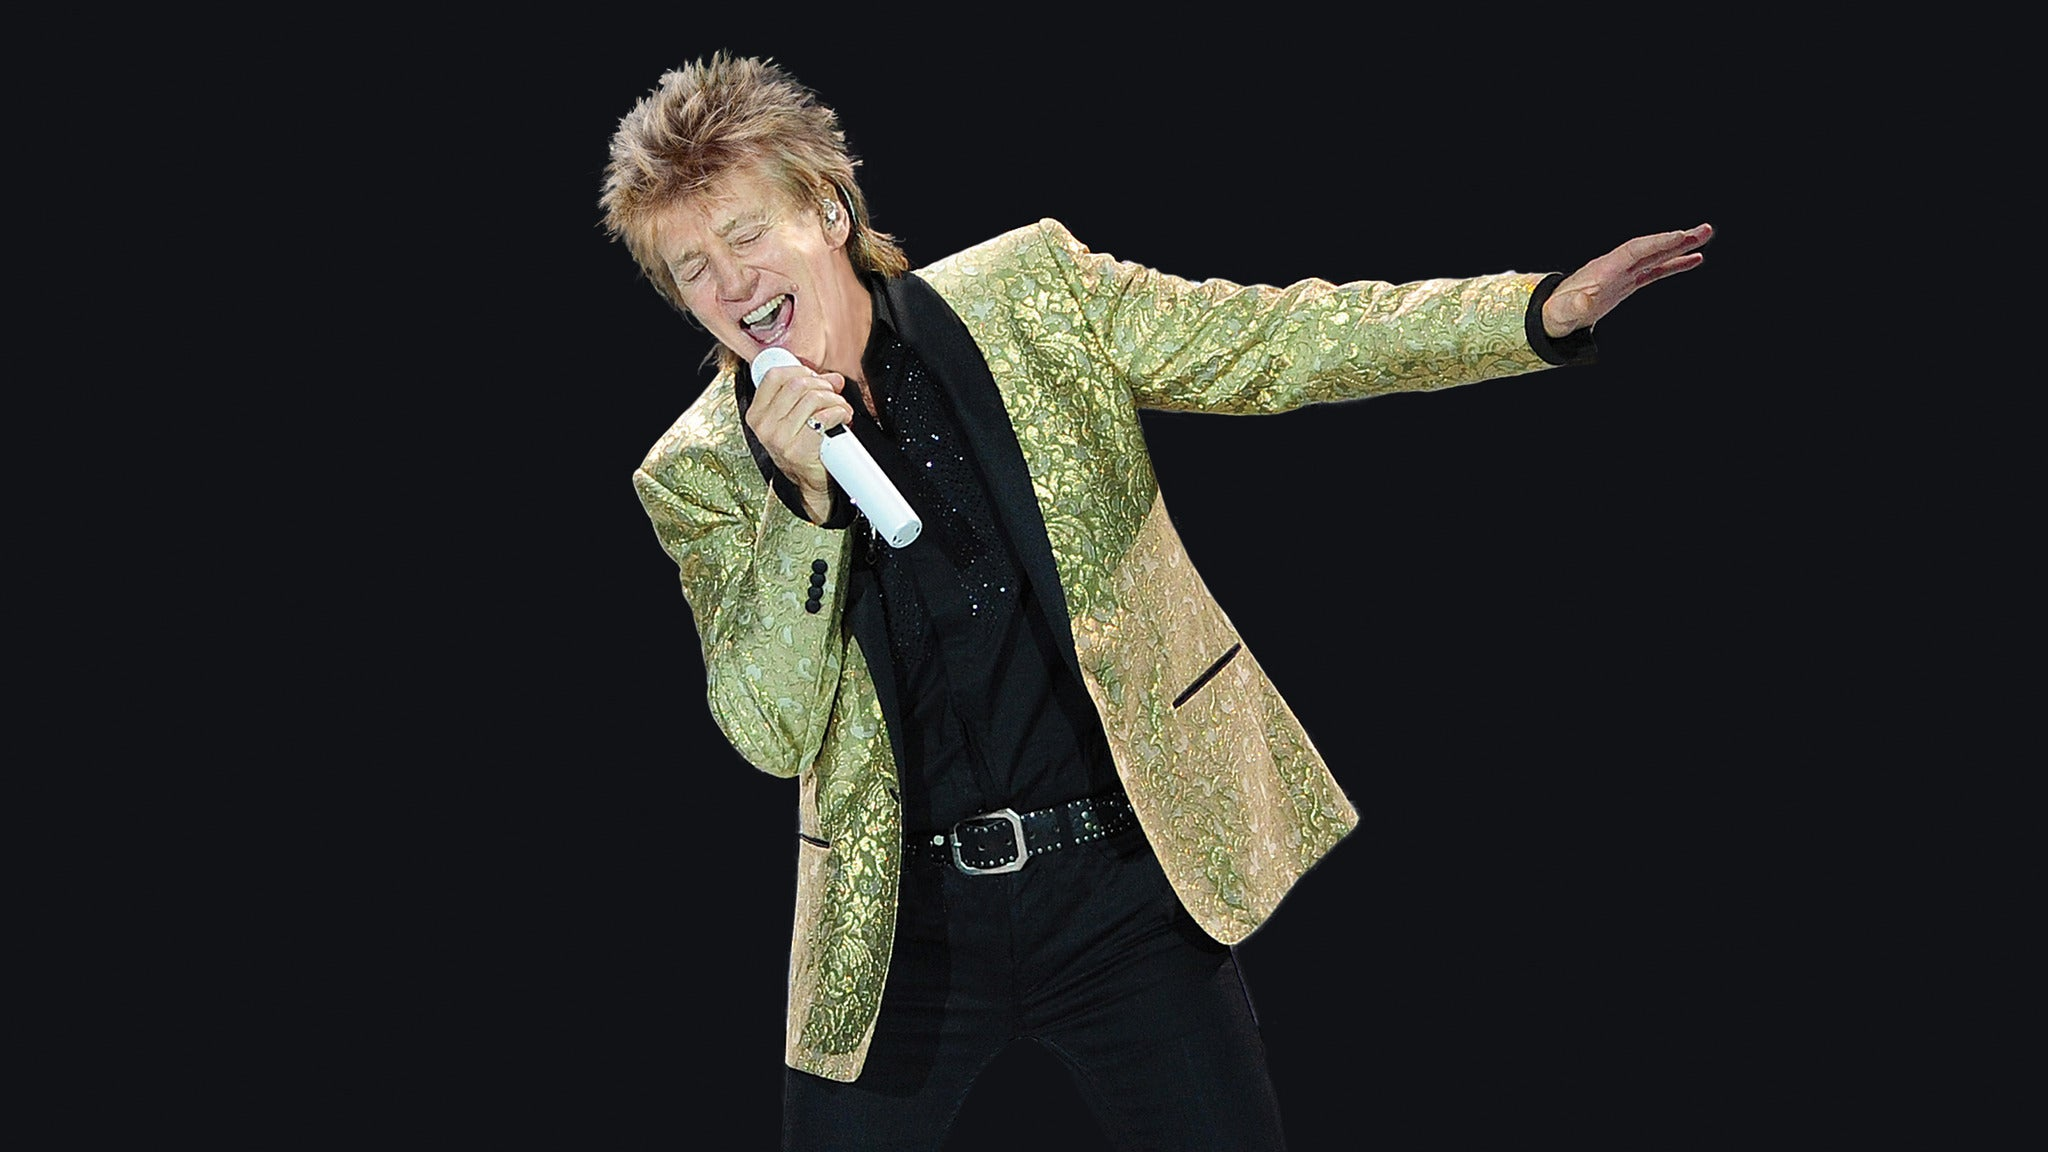 Rod Stewart with special guest Cheap Trick